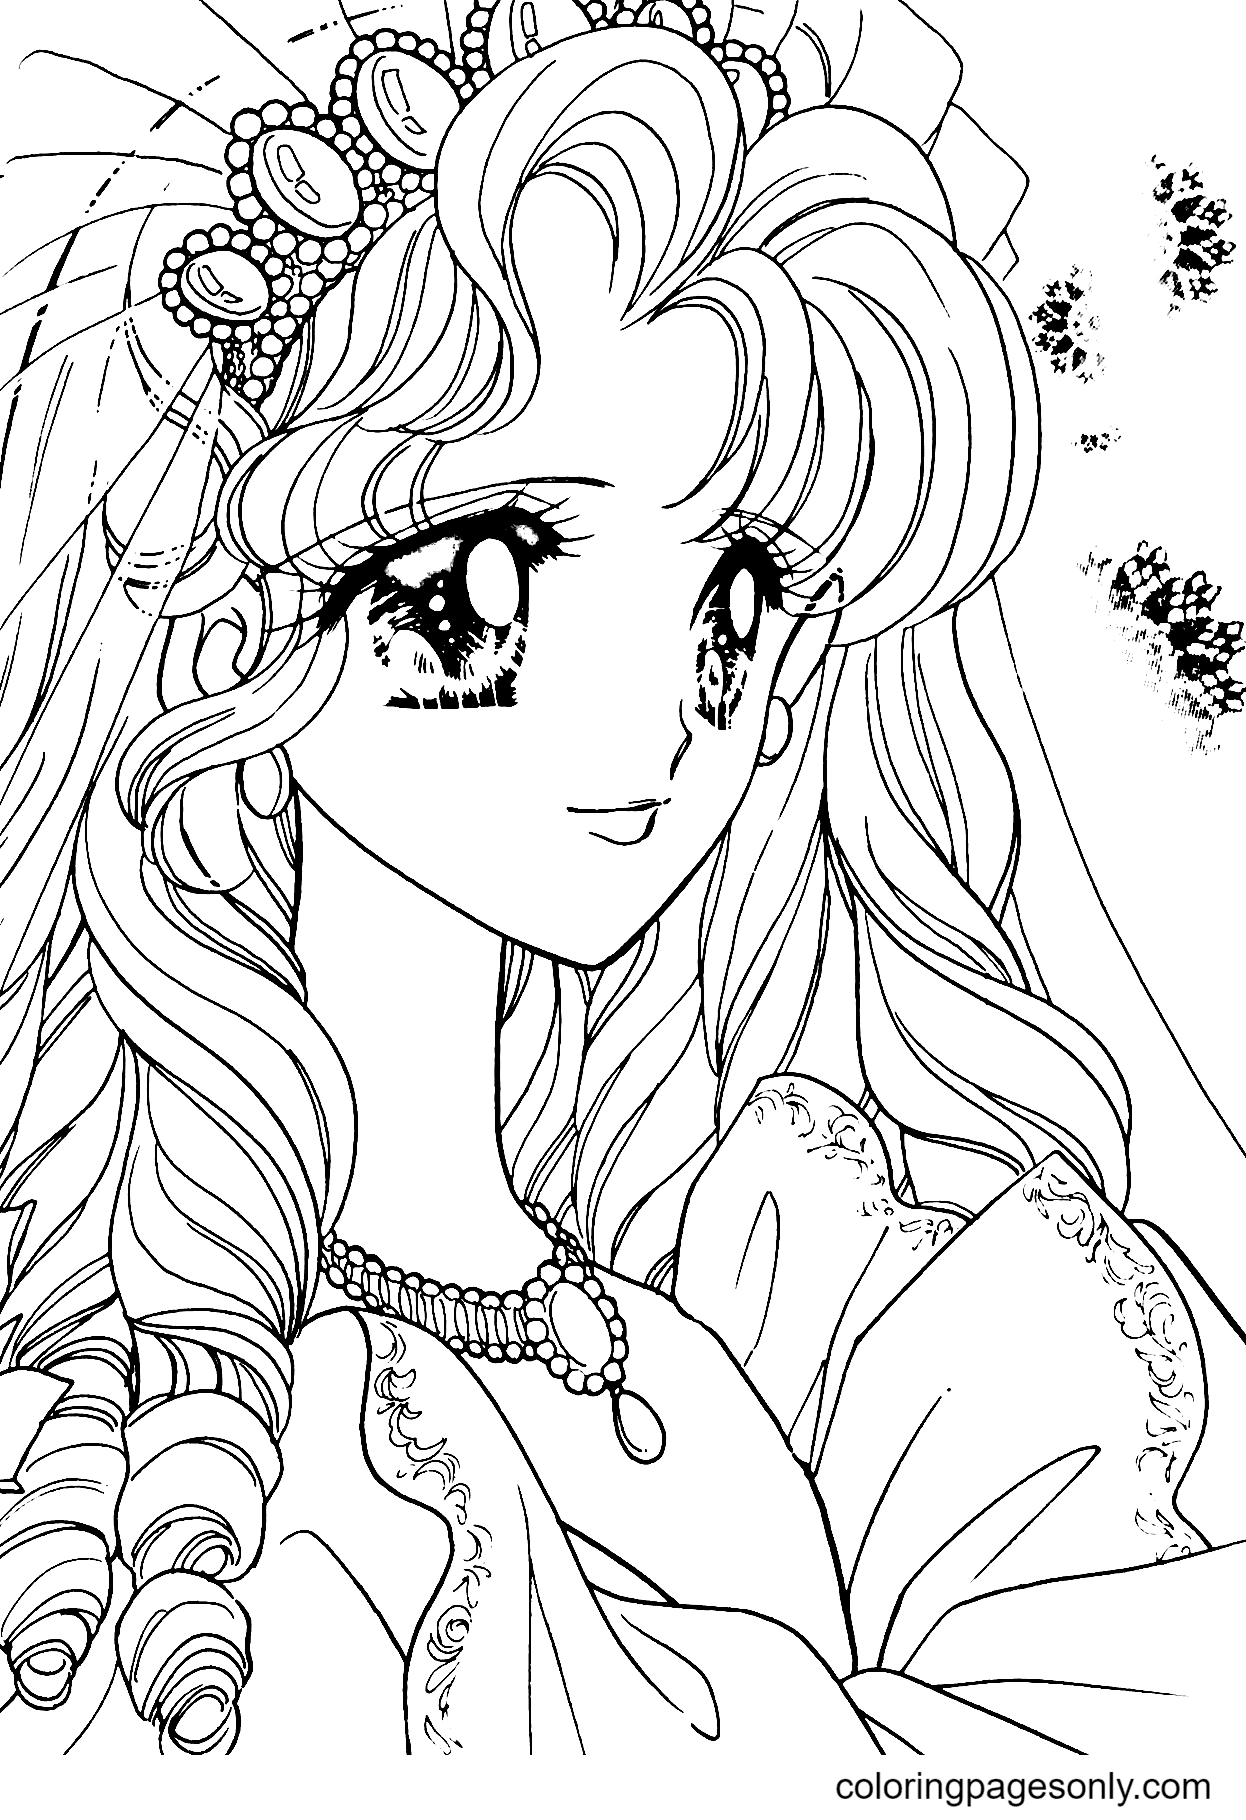 Lovely Anime Girl Coloring Page